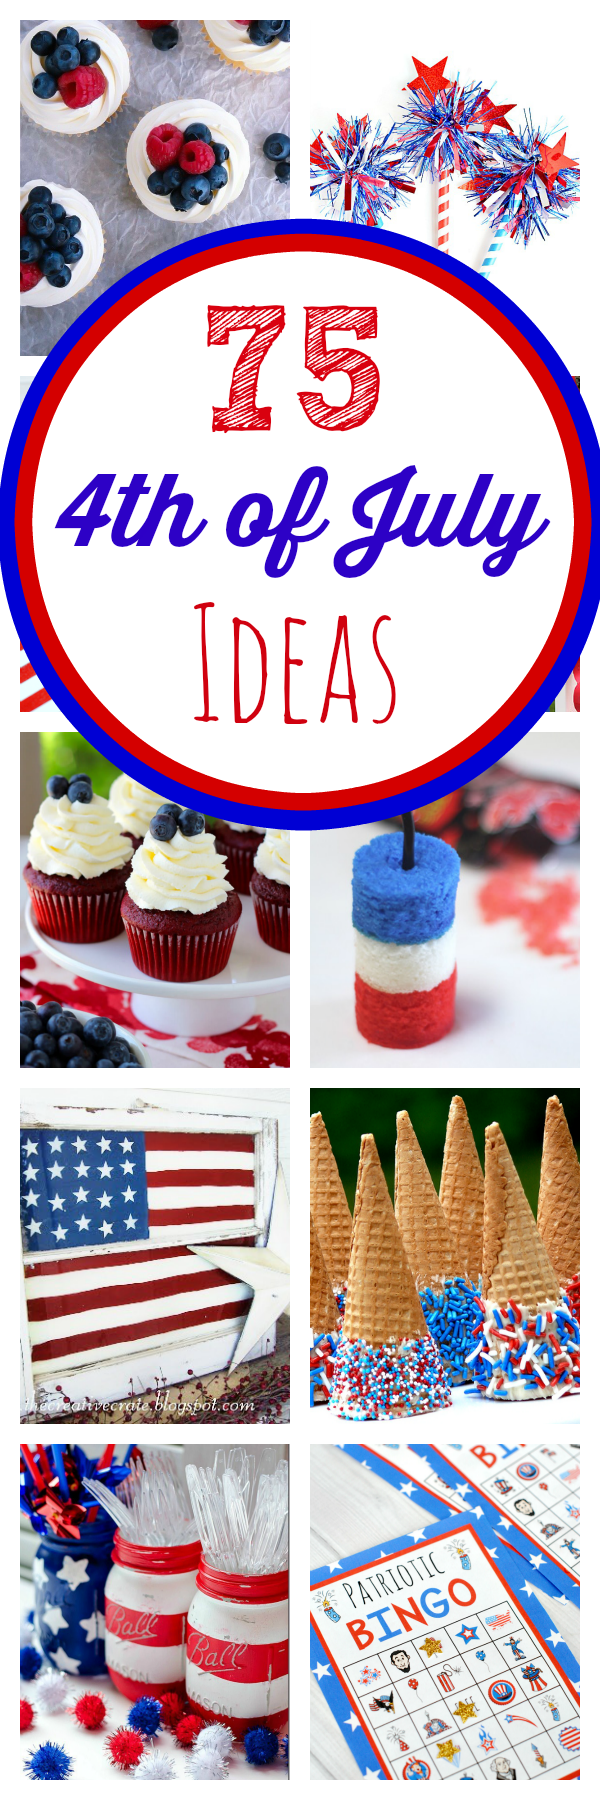 TONS of great 4th of July party ideas! Crafts, games, food, decorations and more. #4thofJuly #independenceday #4thofjulyparty #4thofjulyfood #4thofjulydesserts #4thofjulydecorations